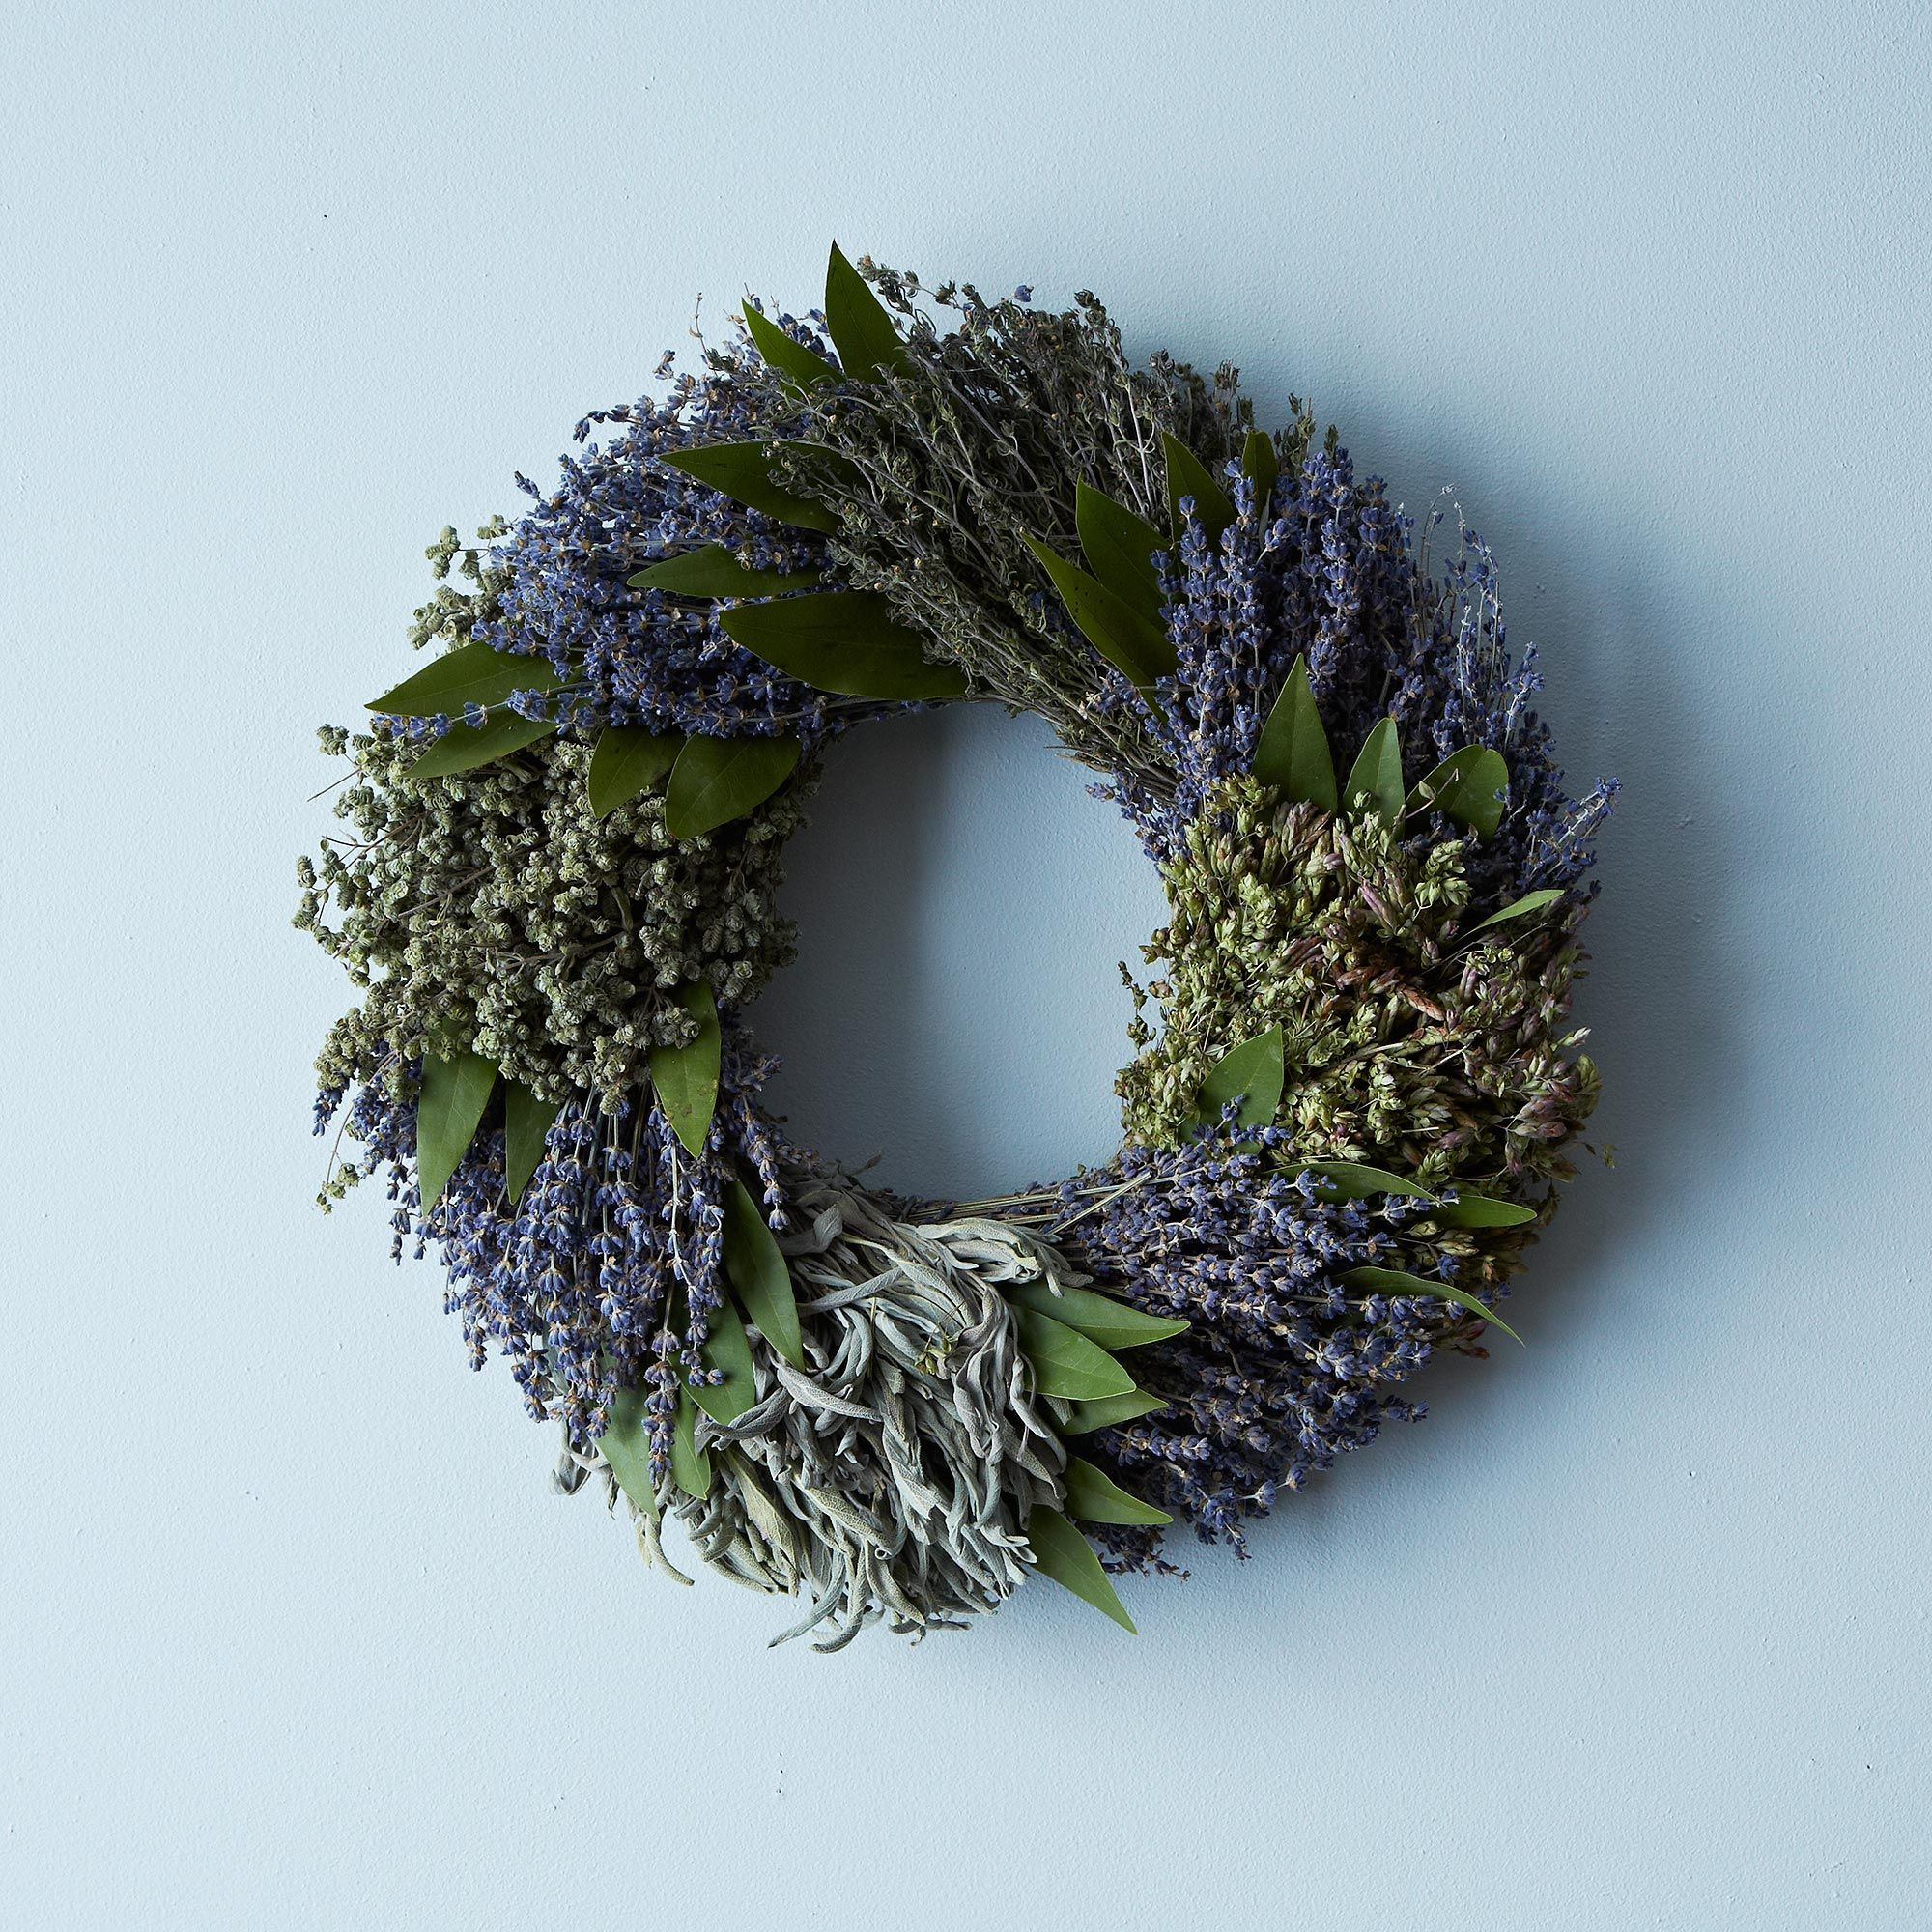 6b75a085-789d-42ce-b363-c2efcaa1b4e5--2013-1106_creekside-farms_french-herb-wreath-184